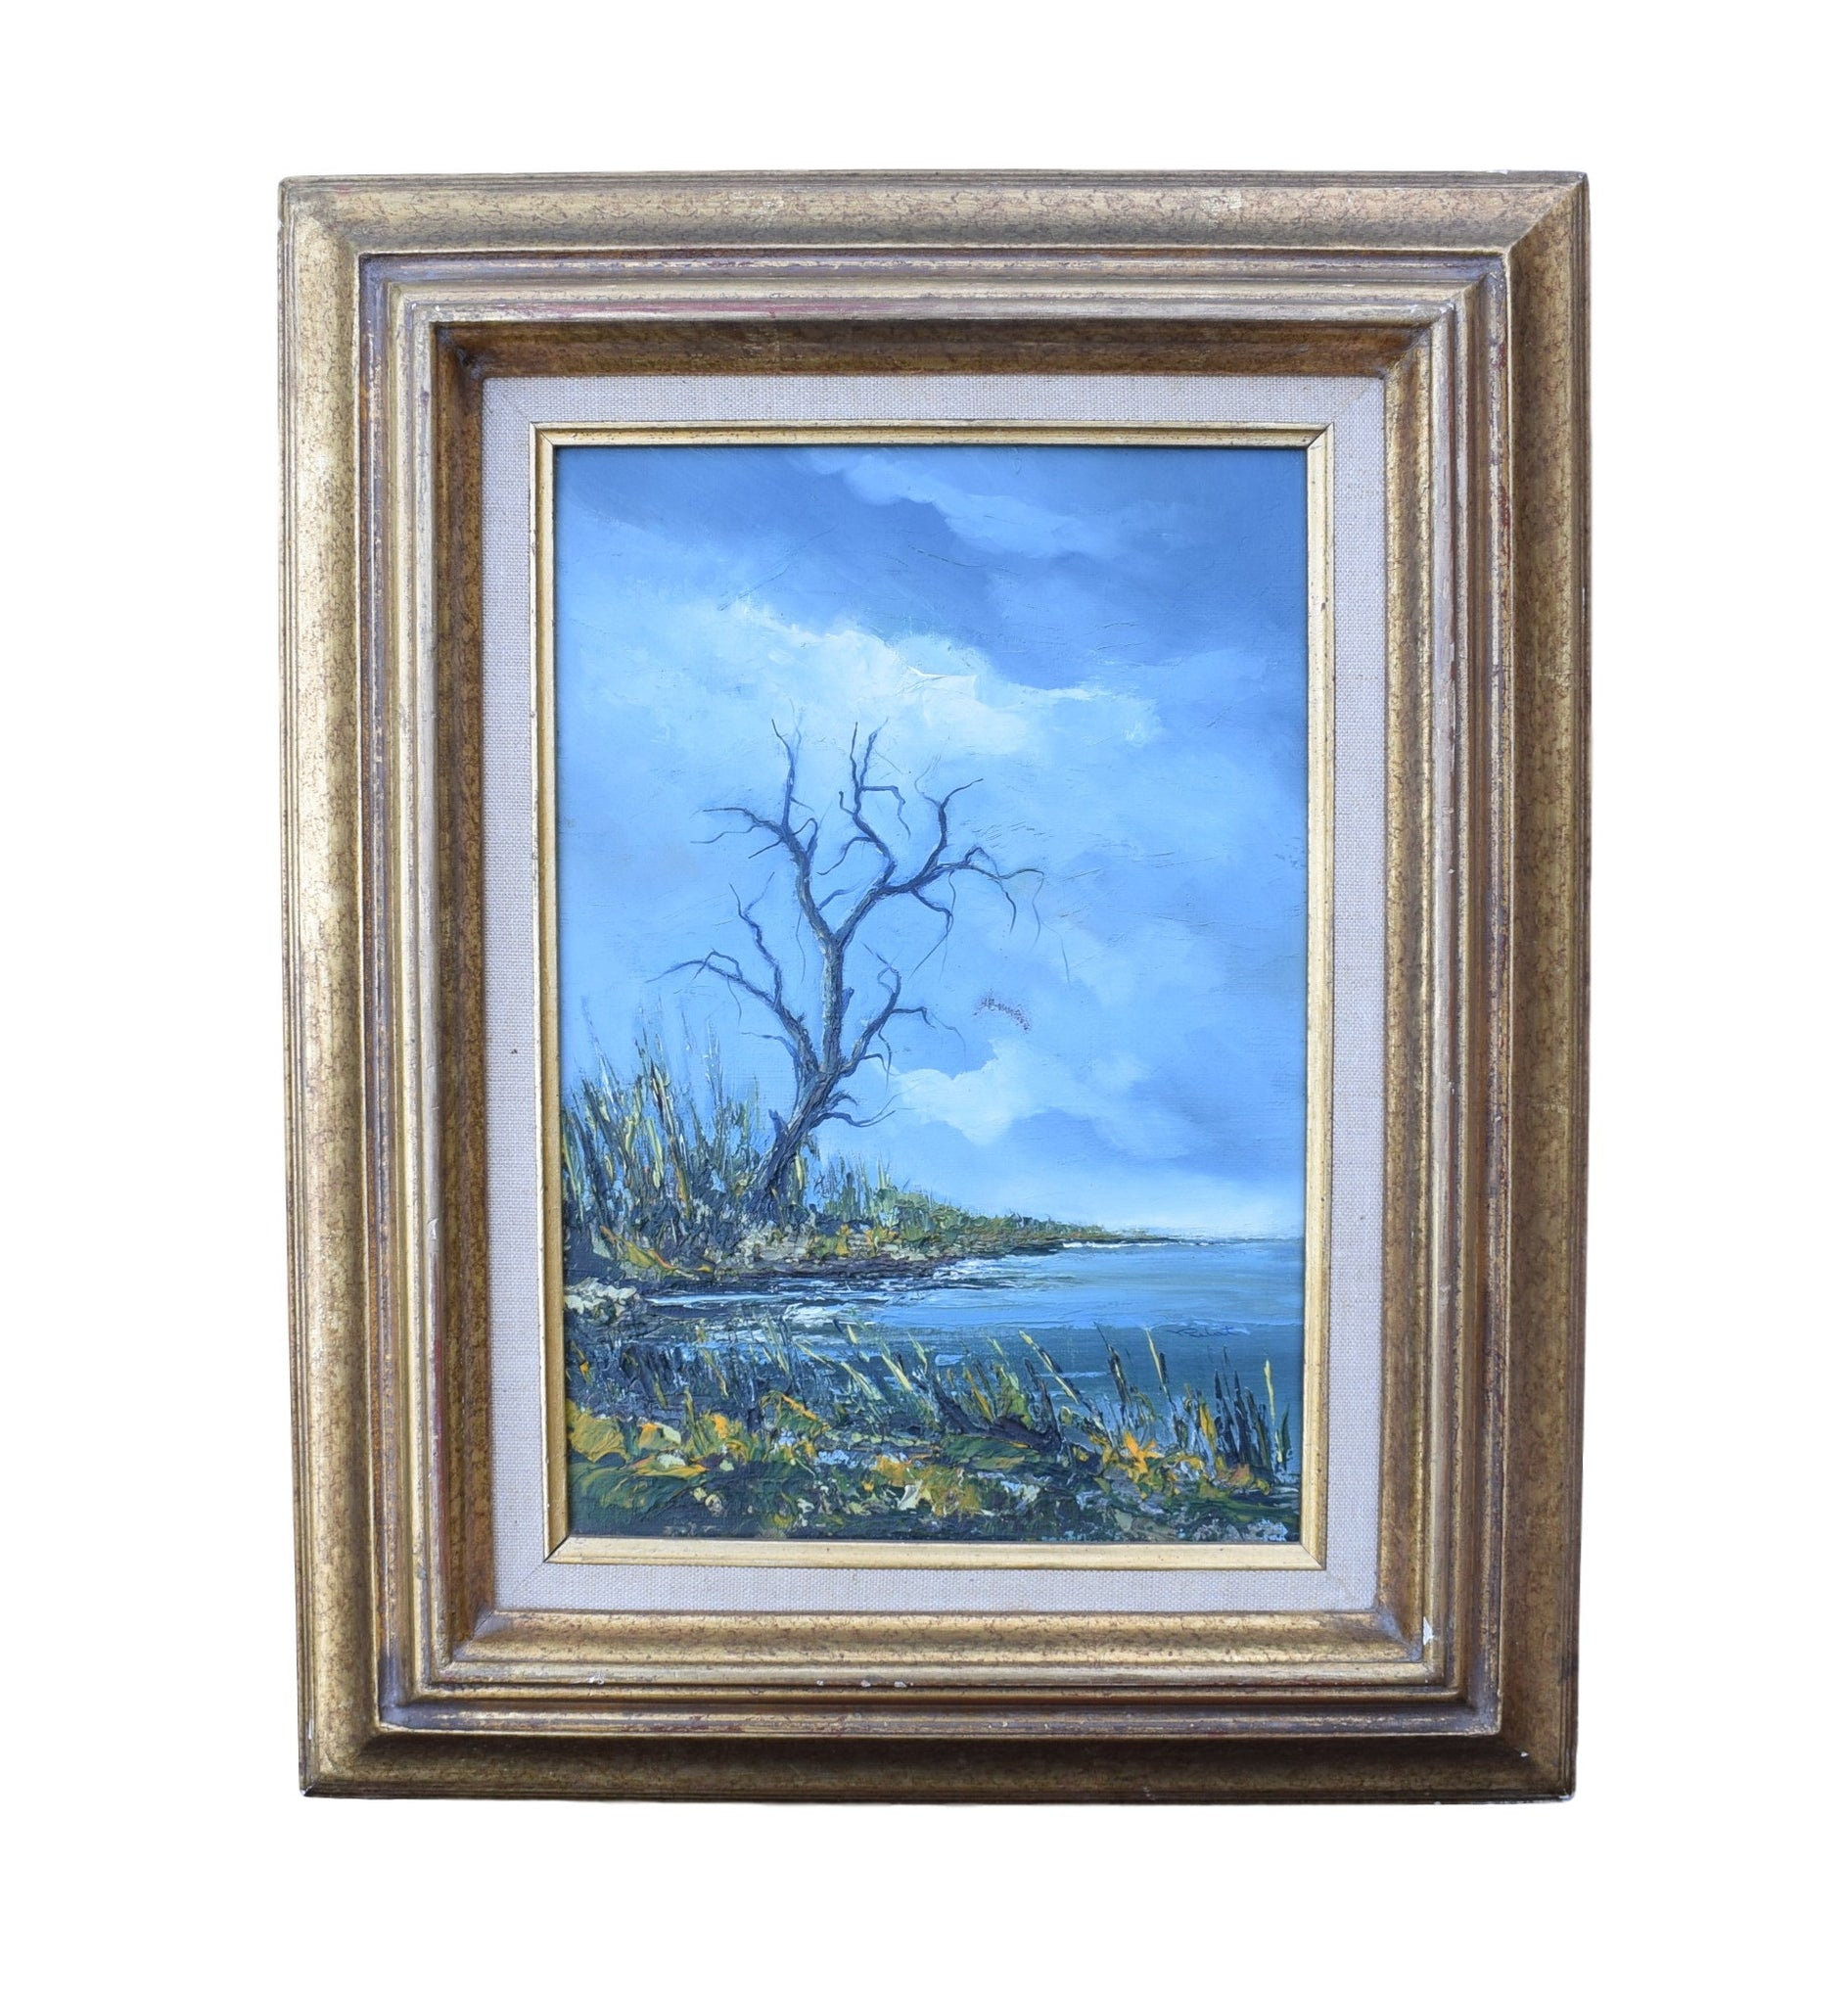 French Vintage Gilt Frame Oil Painting on Canvas Signed Robert Prelot - Charmantiques